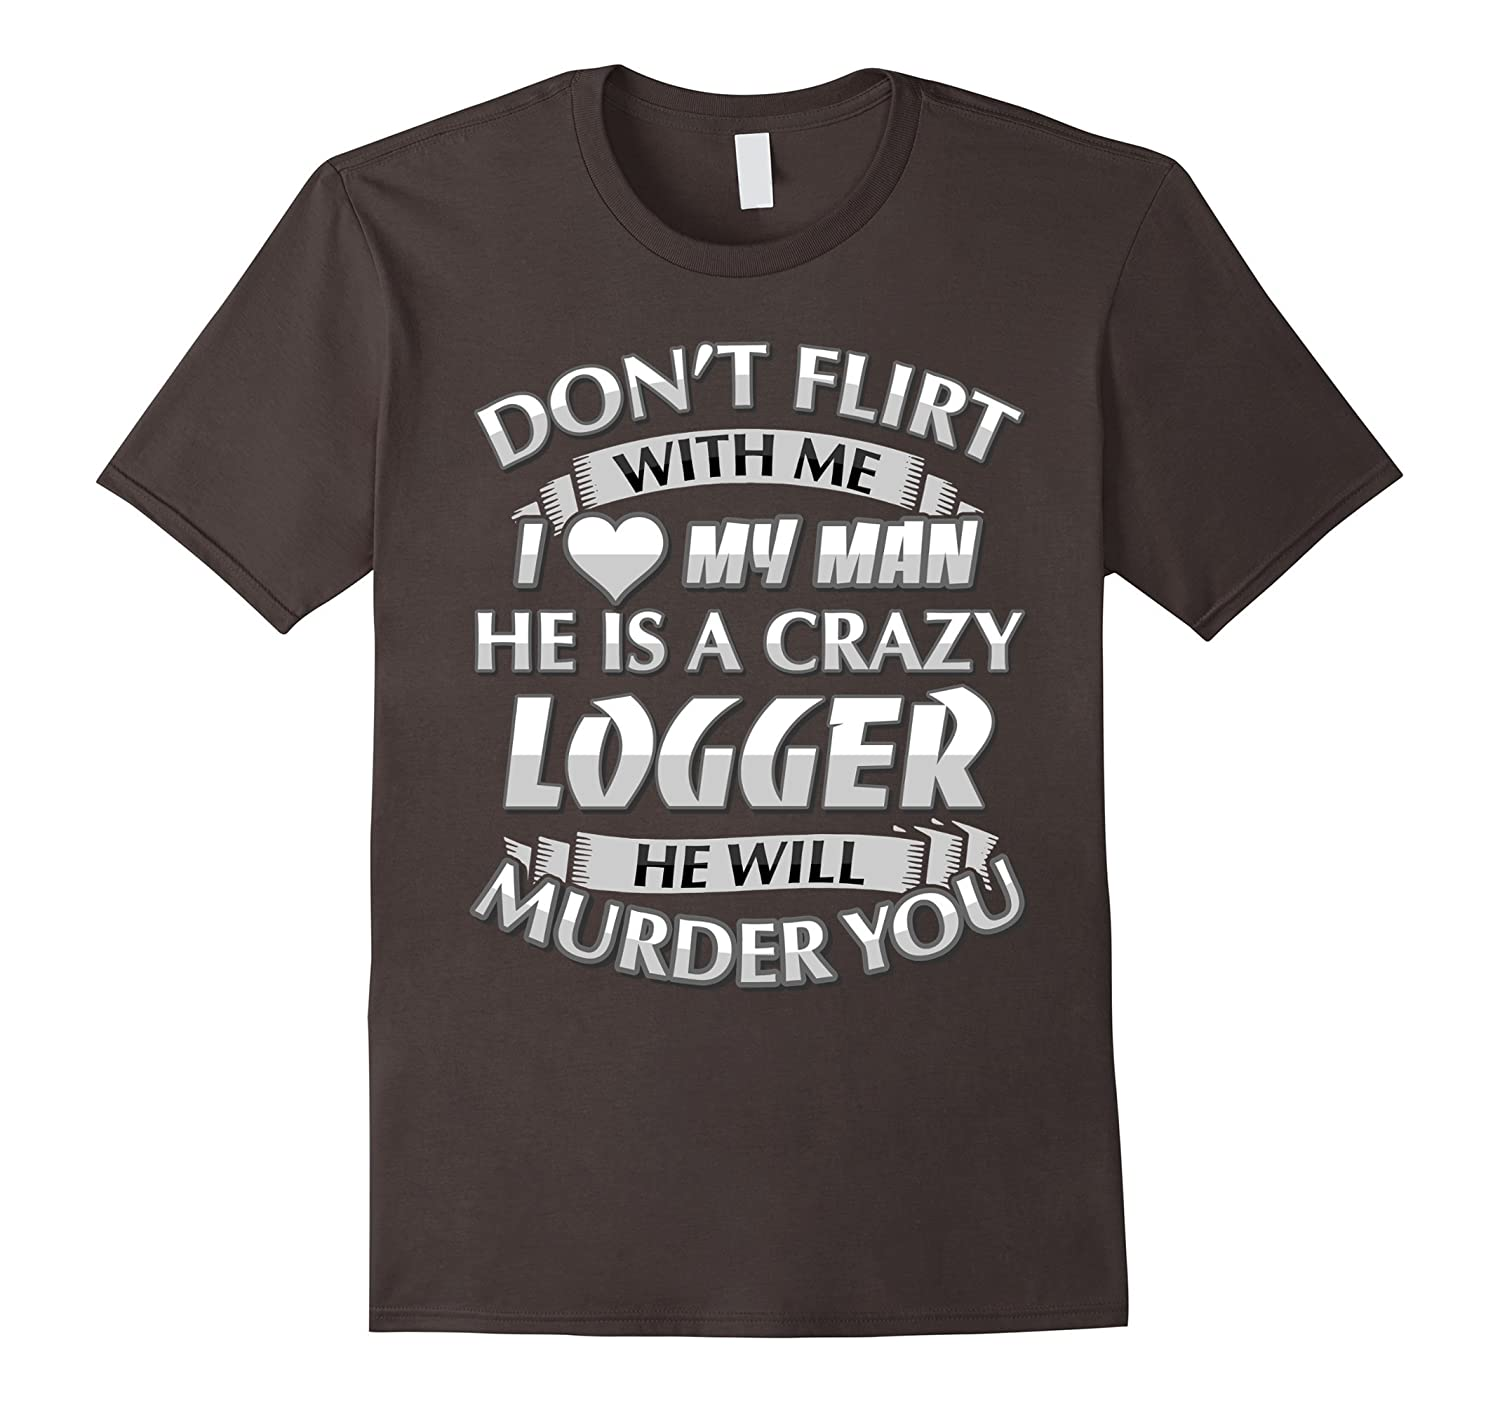 My Lover Was A Logger : I love my crazy logger t shirt dont flirt with me cd